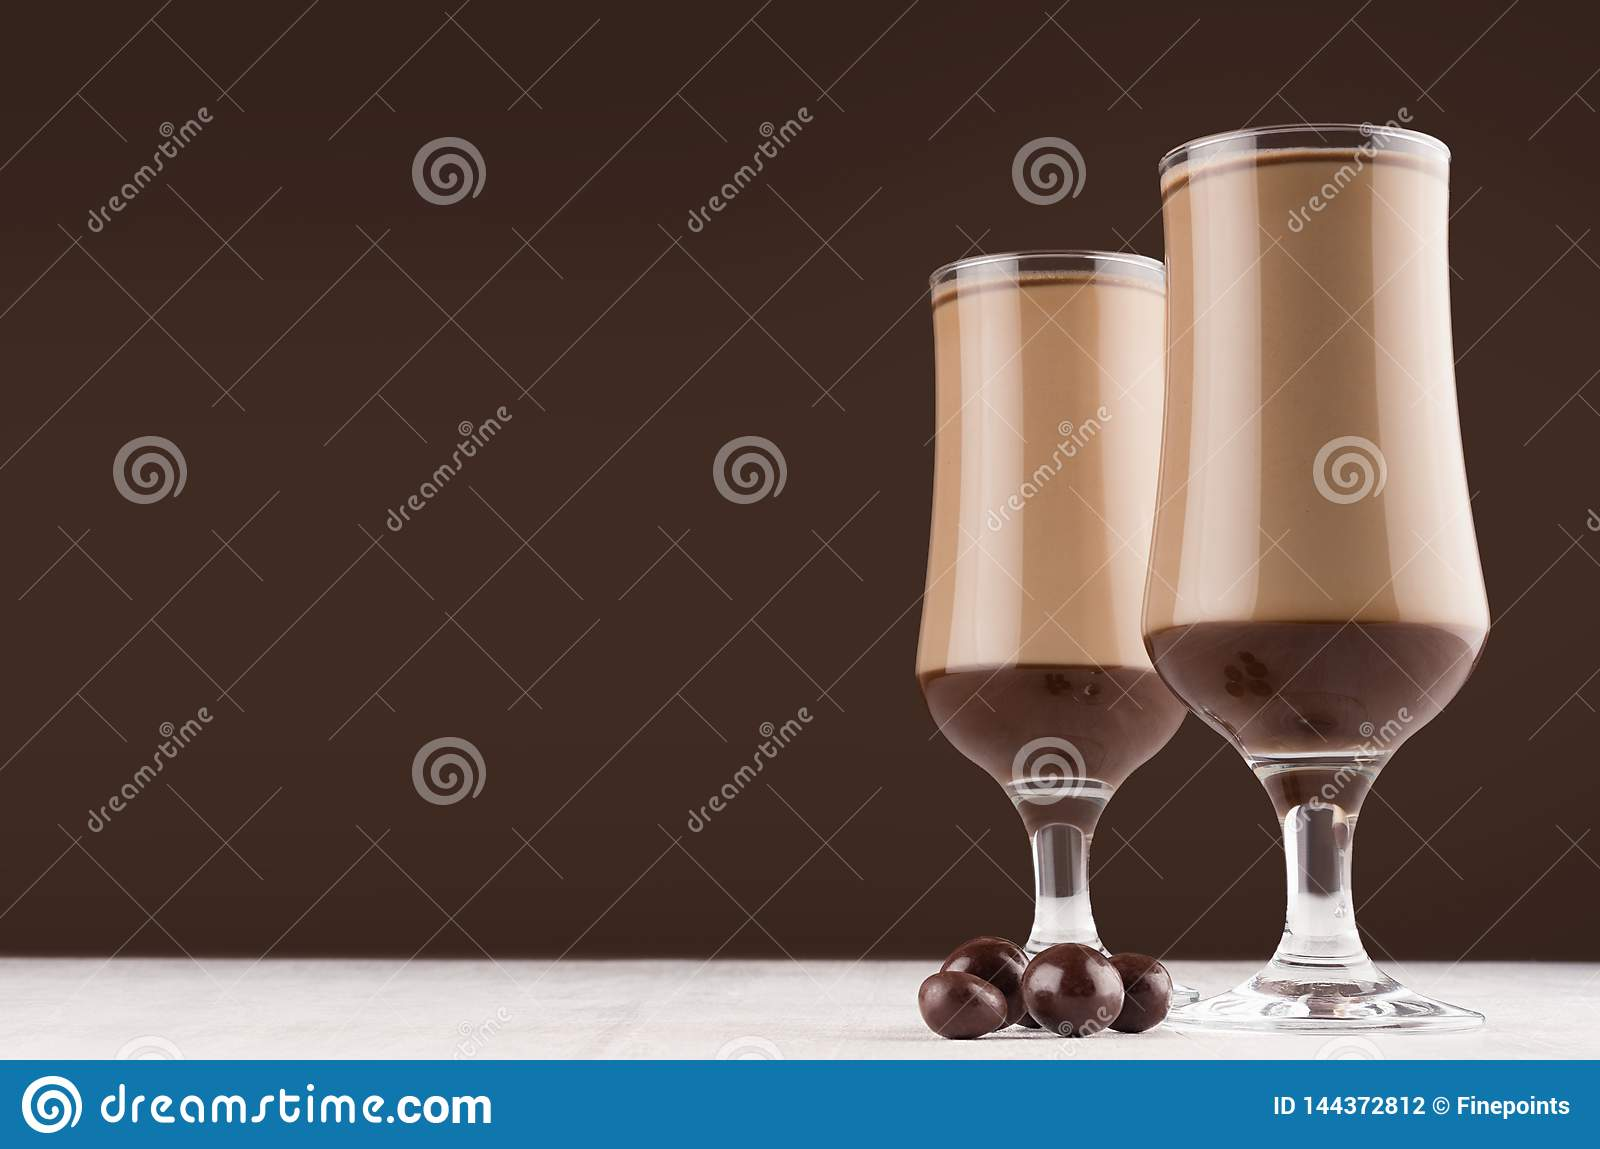 Season coffee beverage in two glass with chocolate balls candies on dark brown wall and white wooden table, copy space.